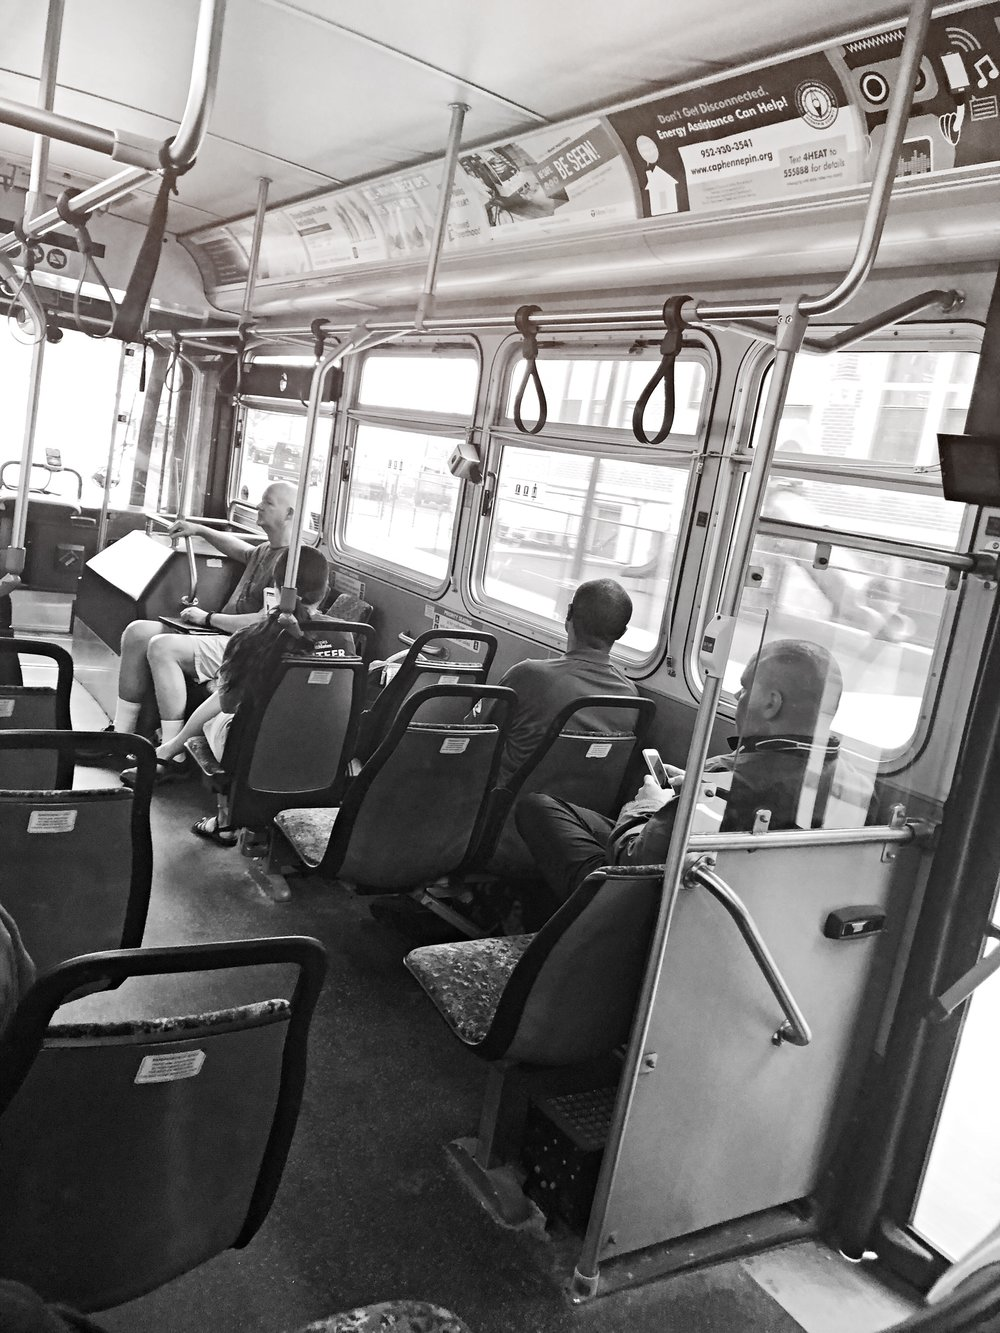 11:43 am. The bus came right on time today. It's usually a few minutes late or early. I really love my commutes to the suburb. And enjoy the eclectic group of people the city offers and the bus is no different. Where every walk of life still hang out together in a world where most don't. I truly feel everyone should take public transit once in their life.